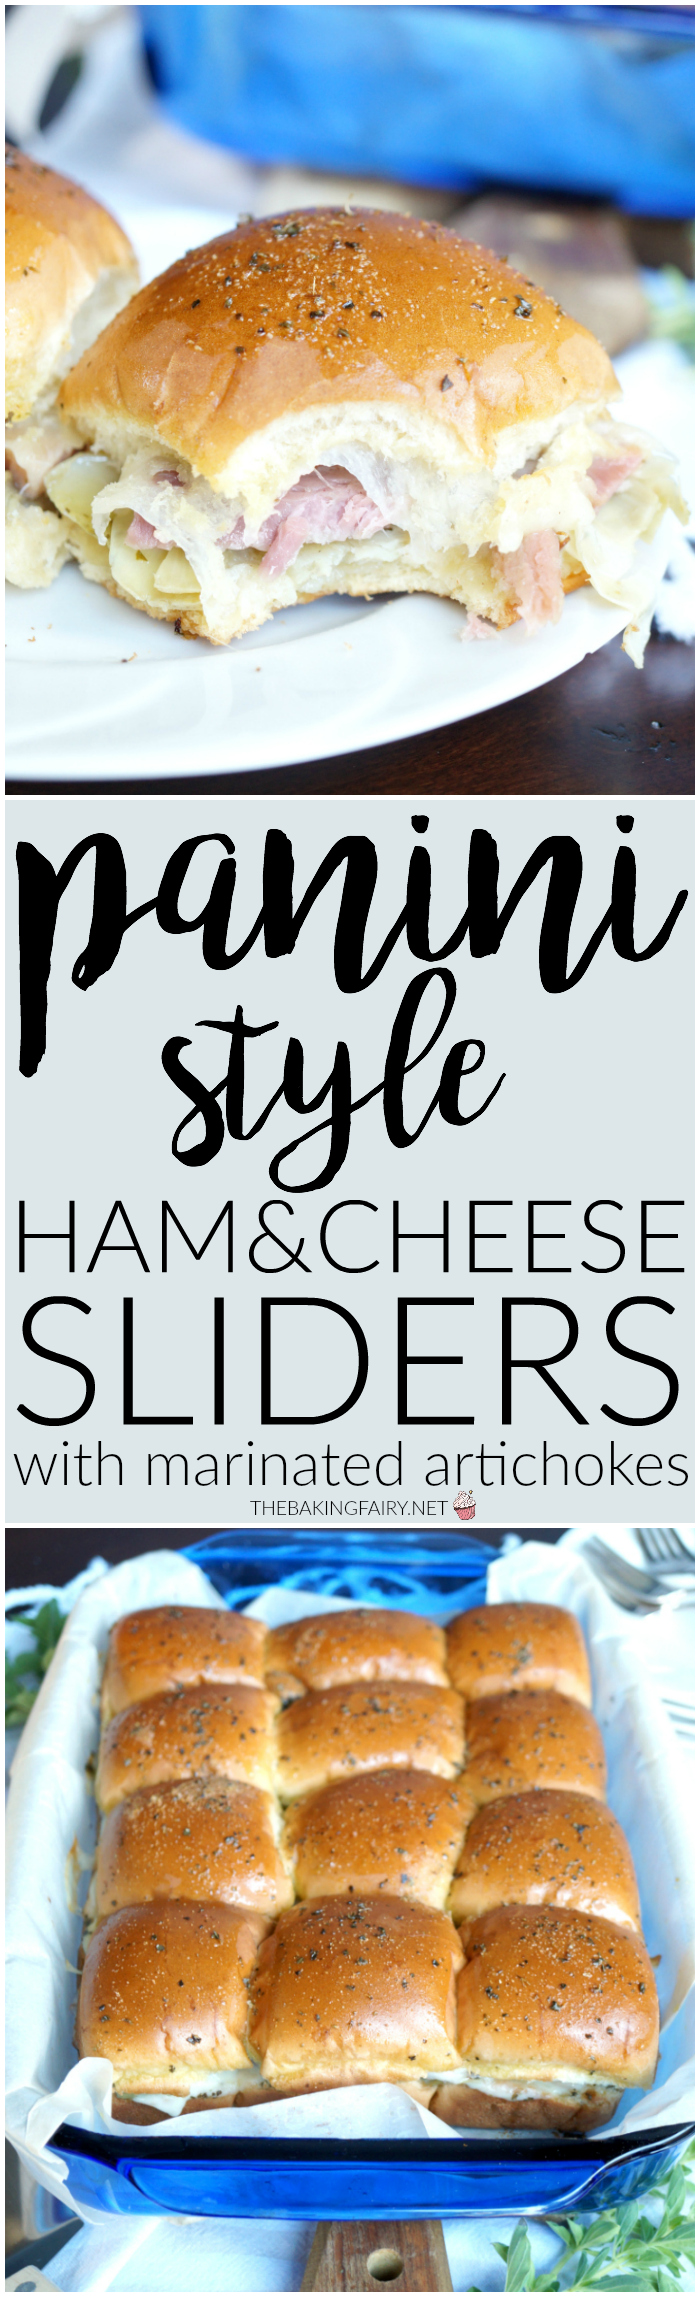 panini-style ham and cheese sliders | The Baking Fairy